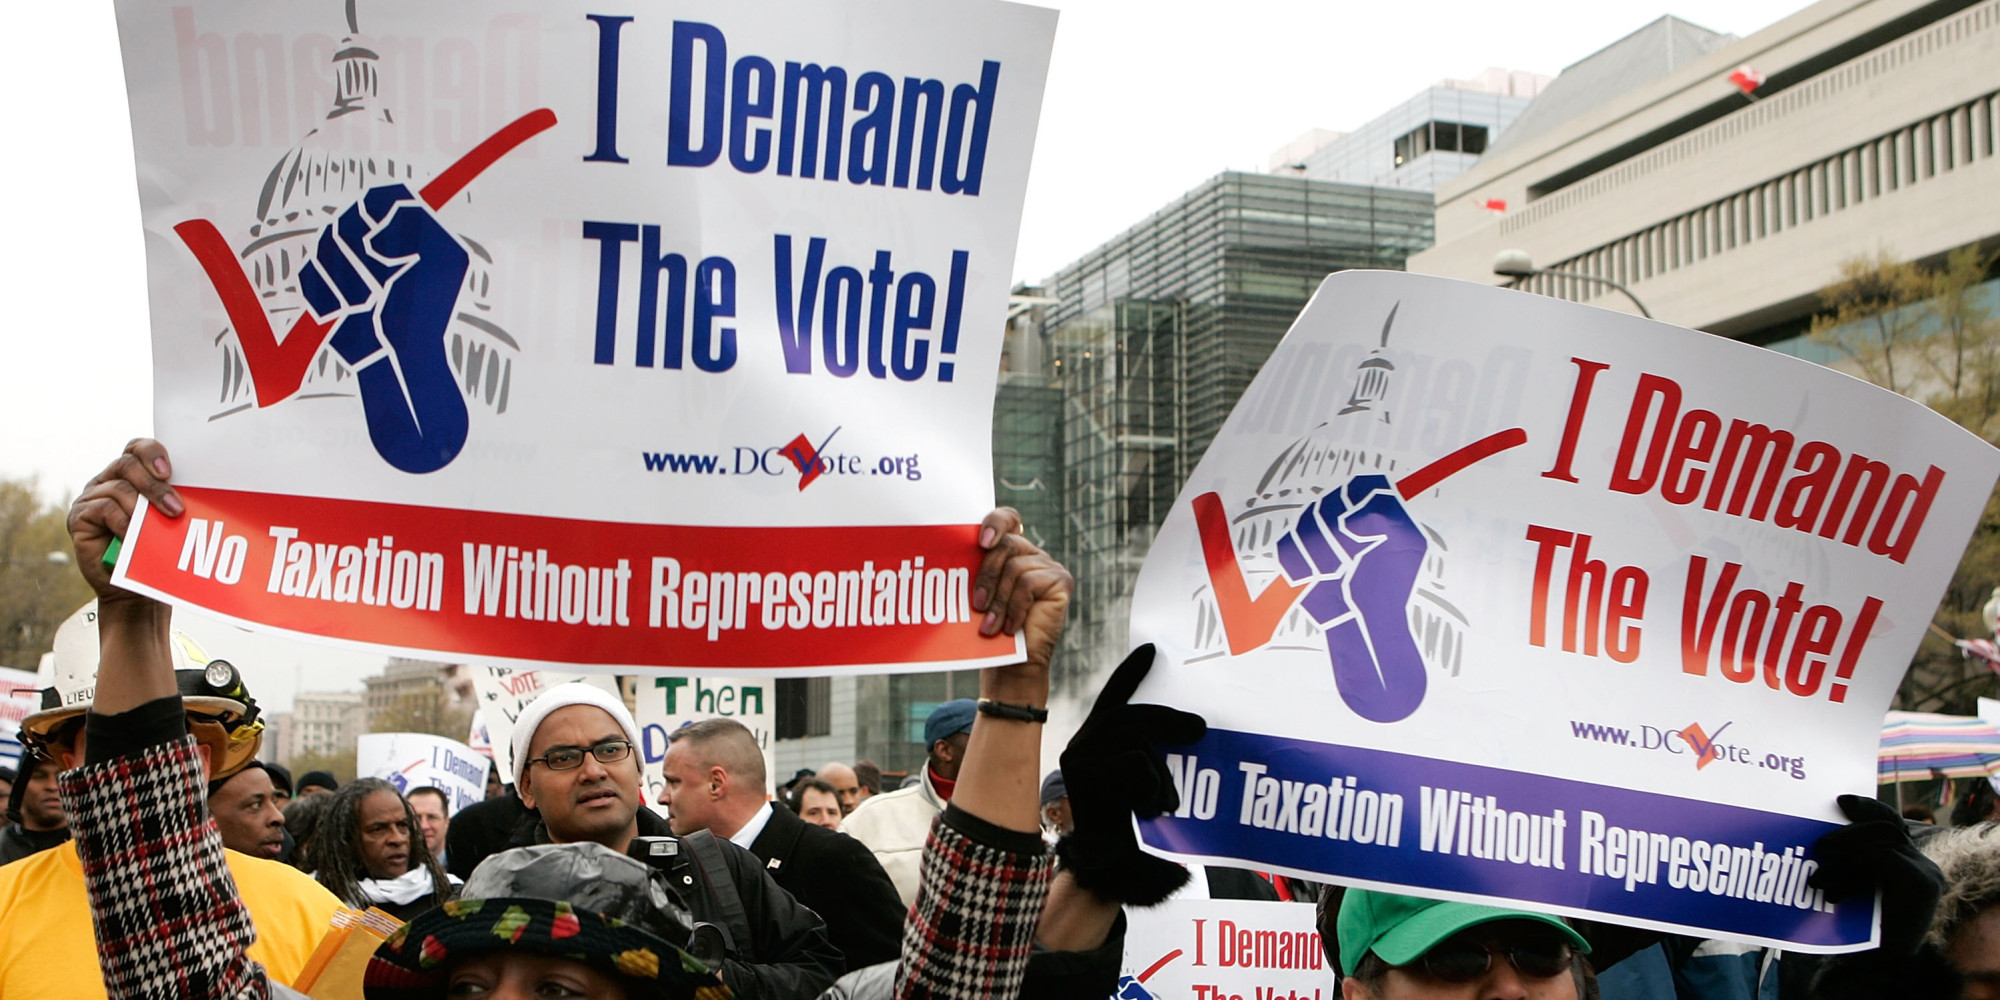 D.C. voting rights